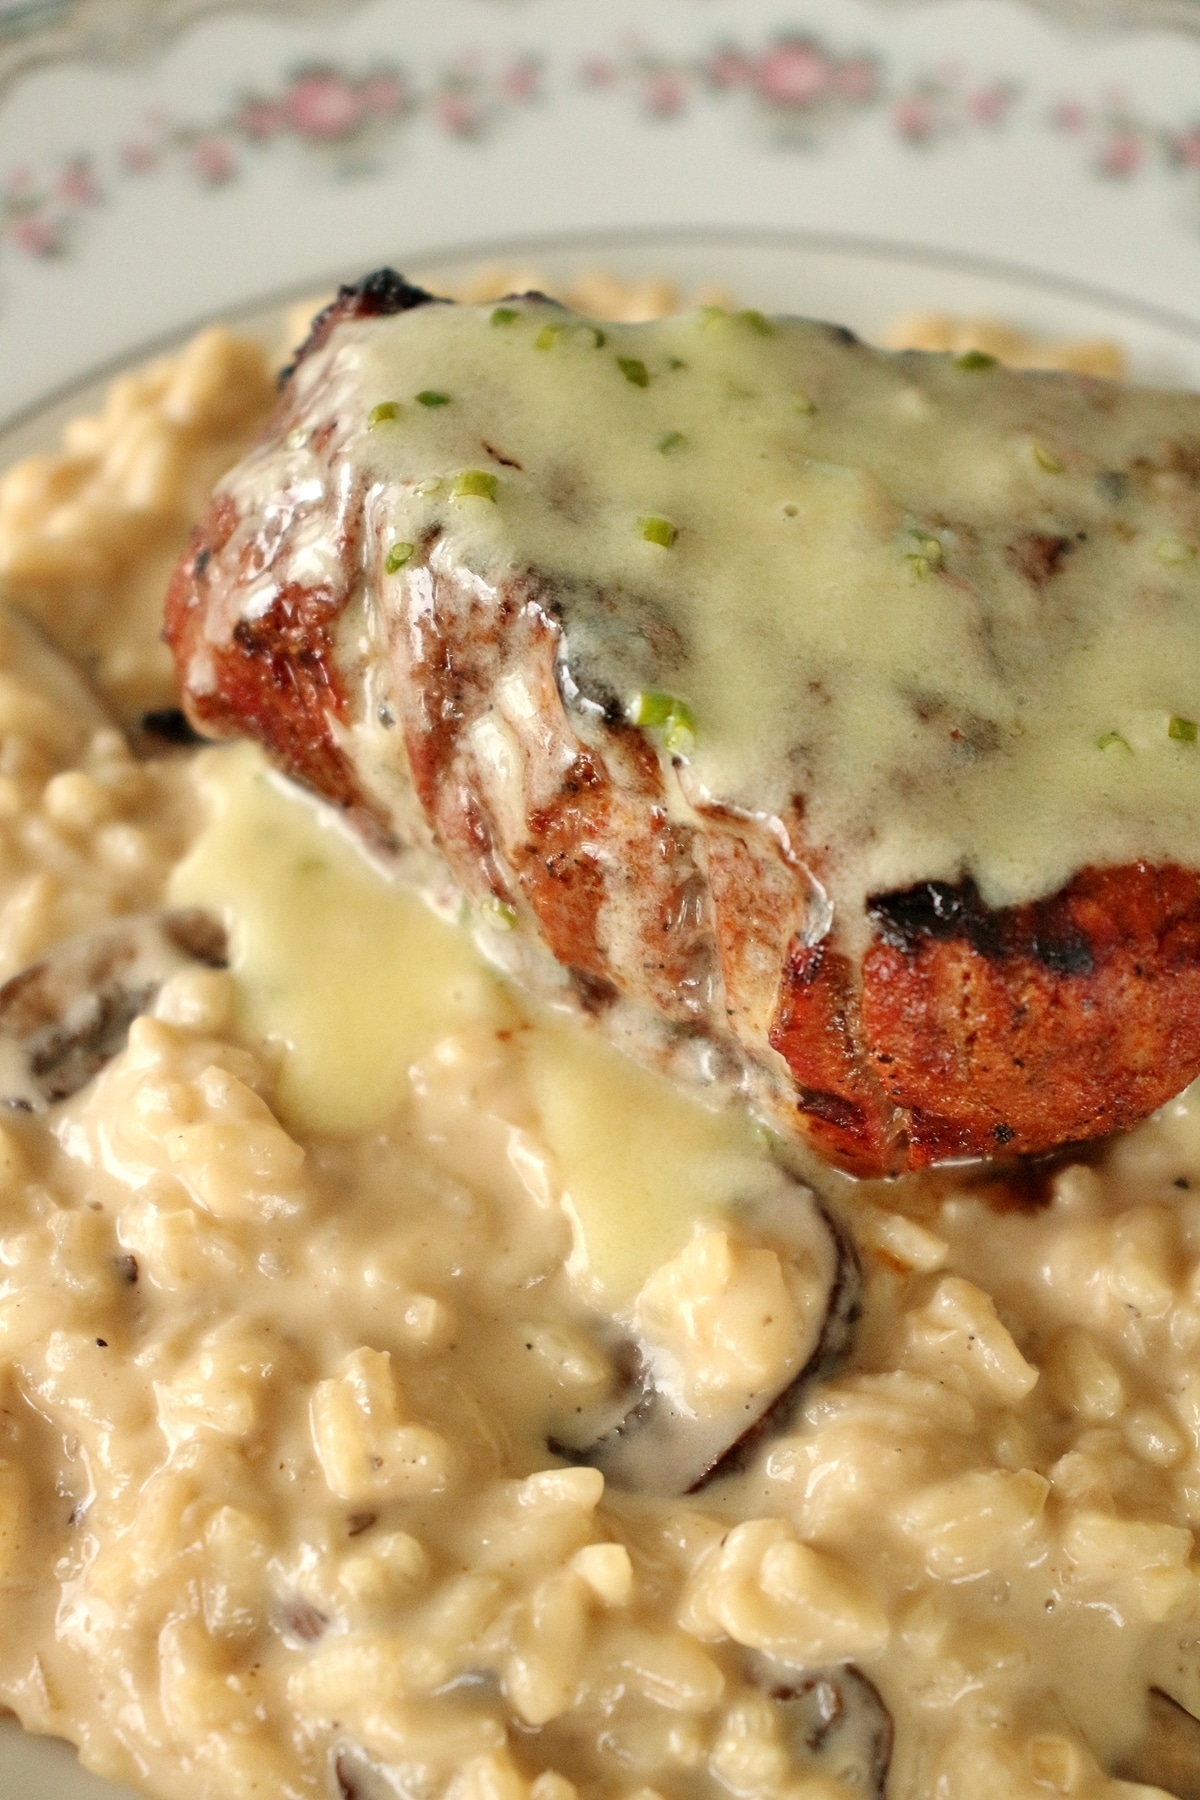 Closeup of a filet mignon steak over a bed of mushroom risotto with truffle butter sauce